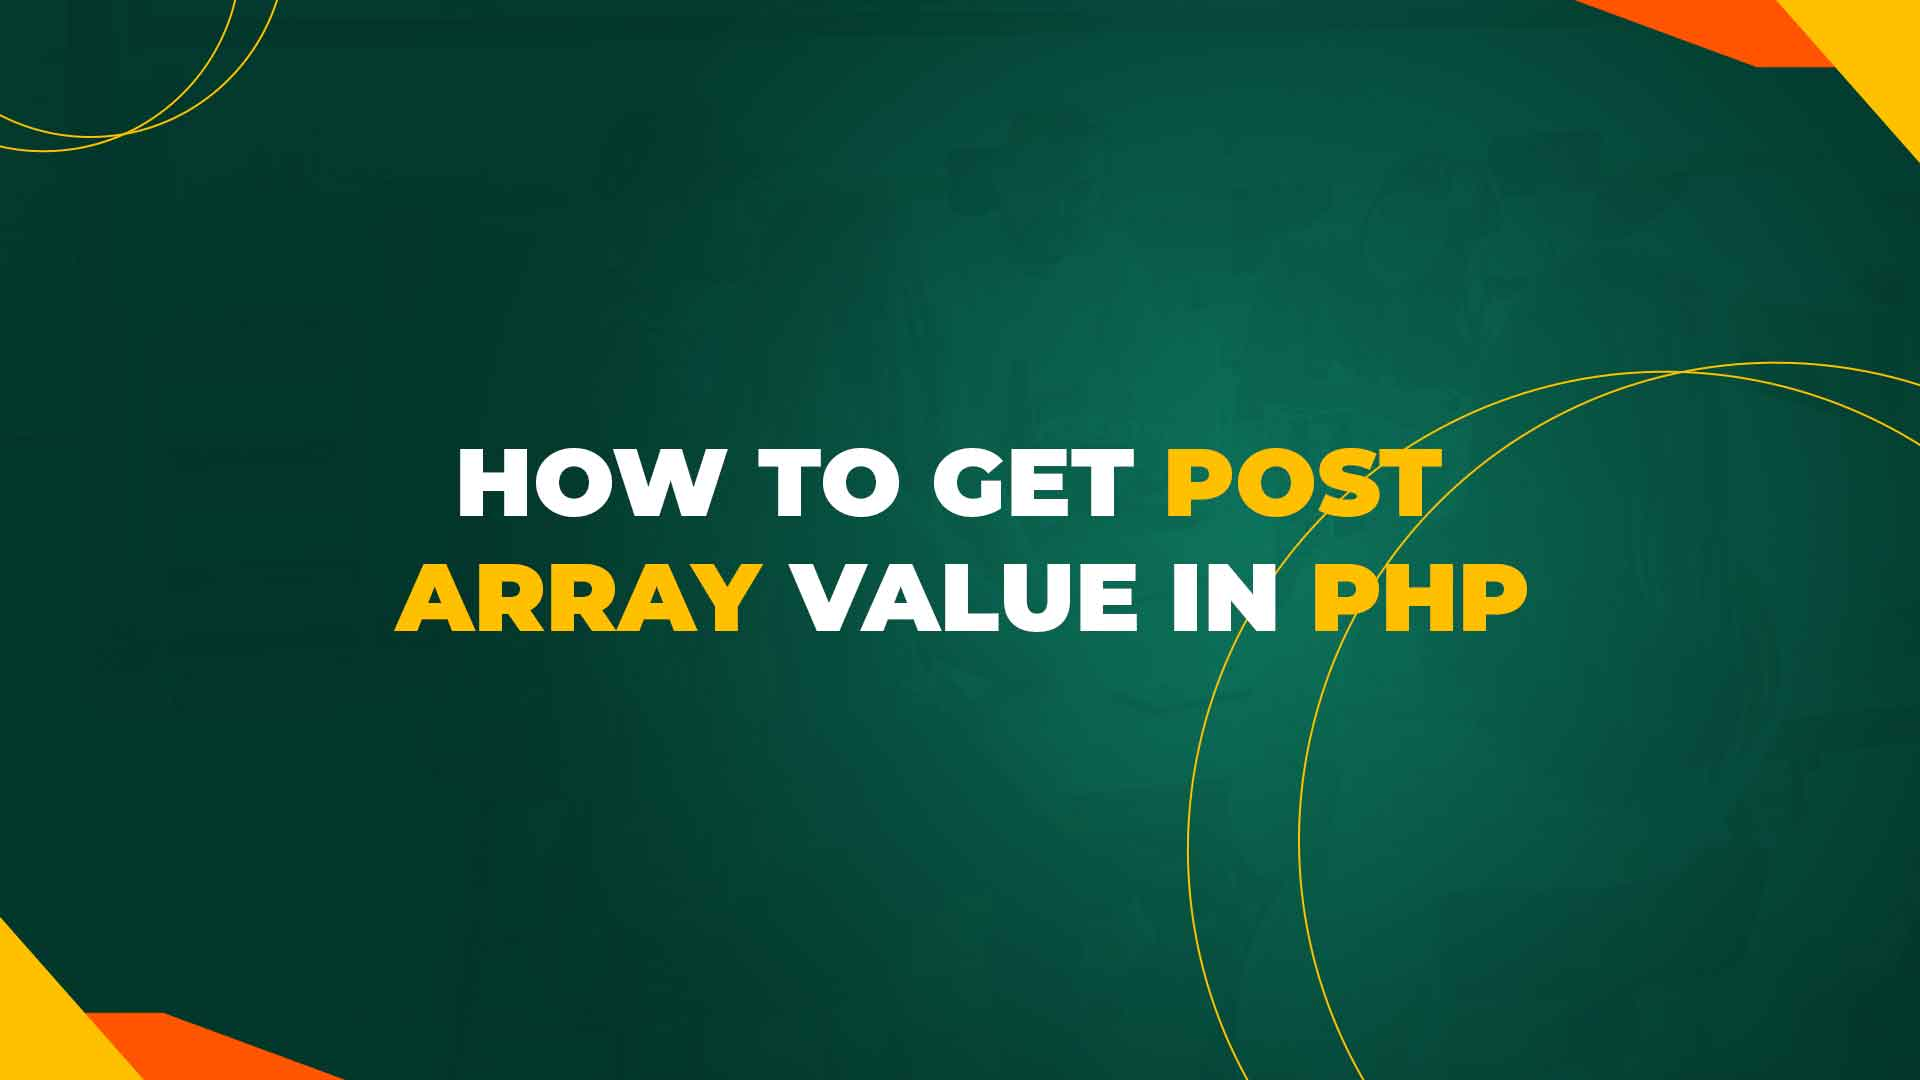 How to get POST array value in PHP